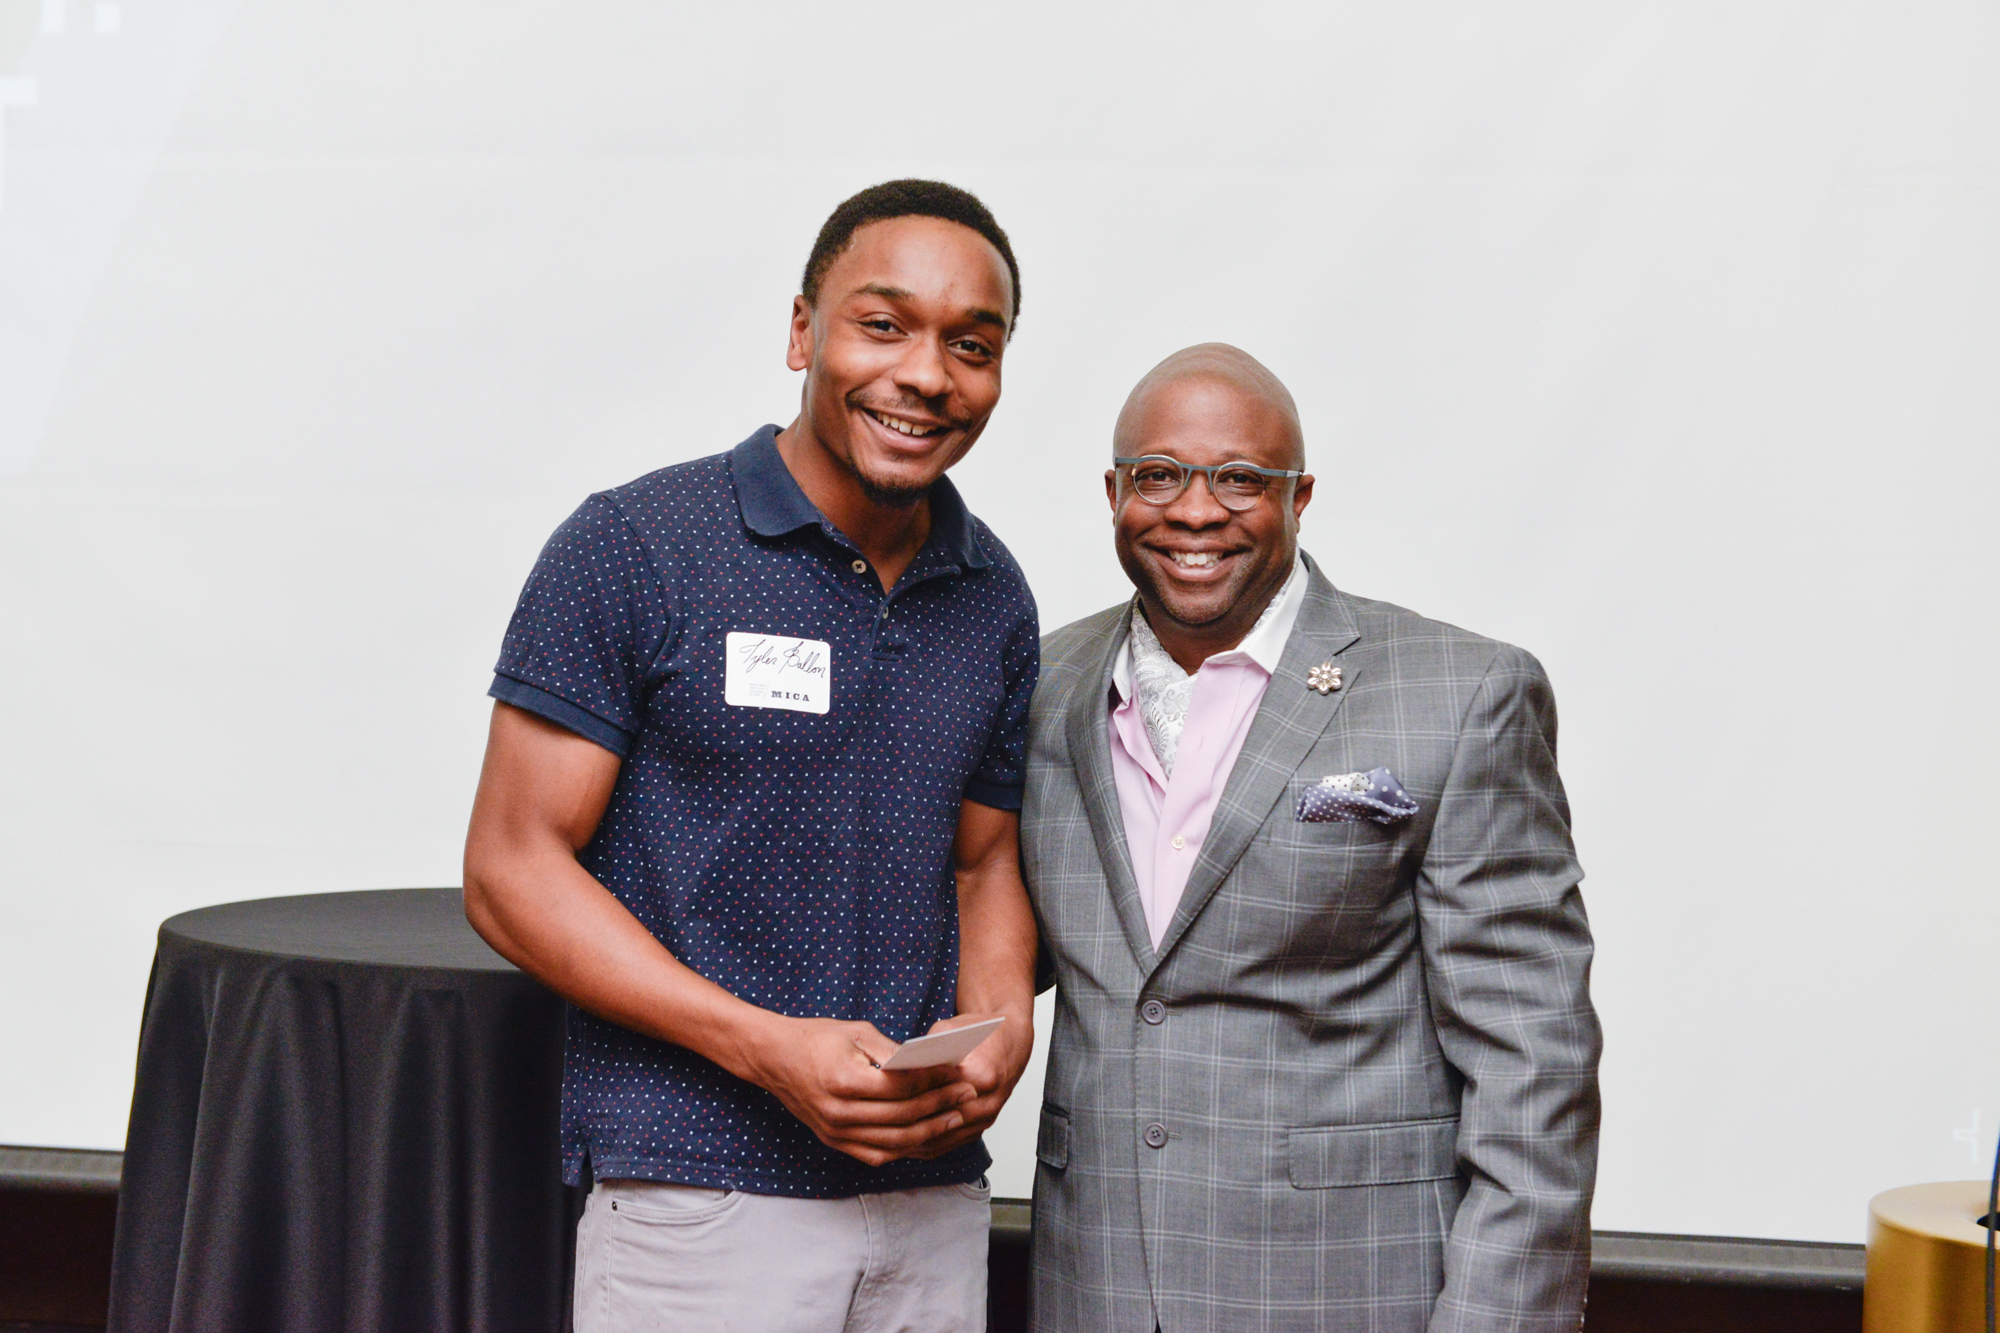 Left to Right:  Taylor Ballon, First Recipient of the Inaugural Harry T. Pratt Award (Undergraduate)  Clyde Johnson, Associate Dean of Identity and Inclusion